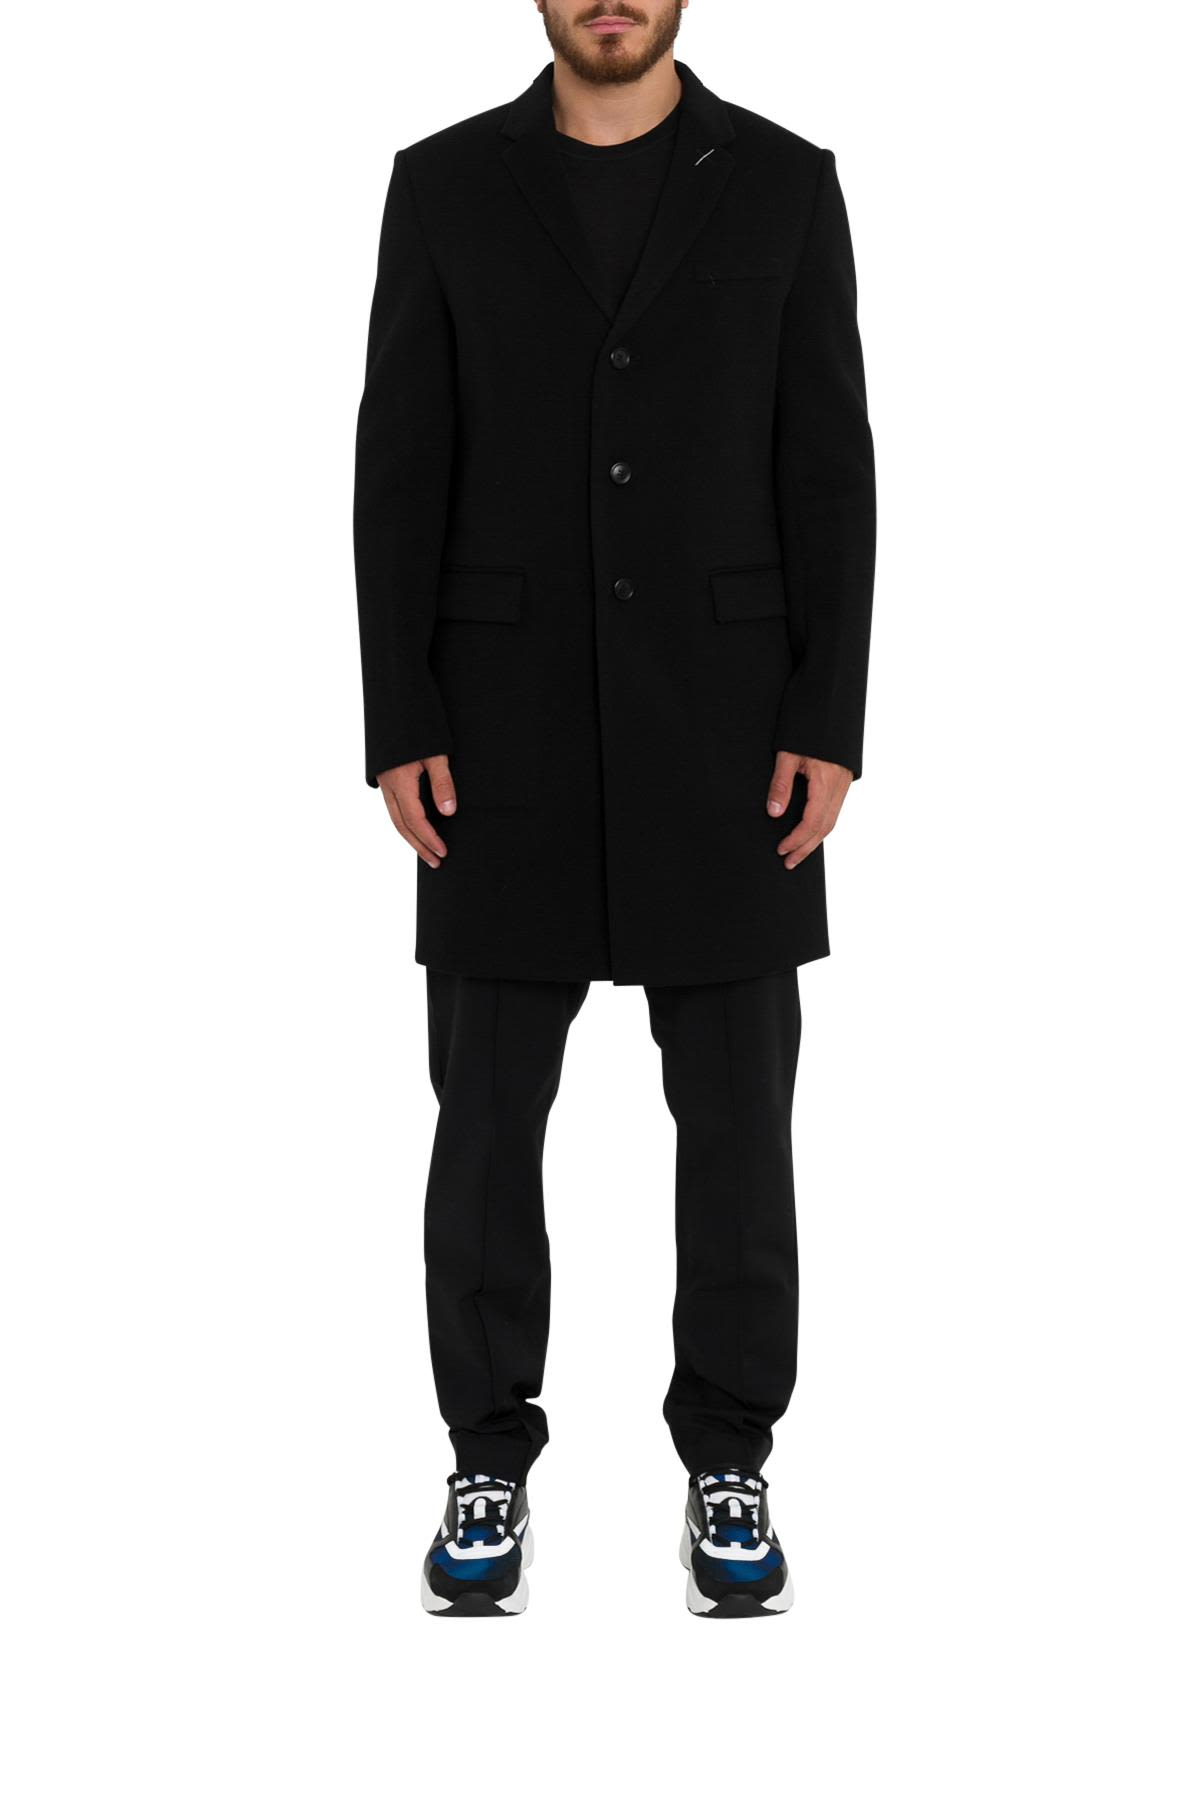 DIOR HOMME SINGLE-BREASTED COAT